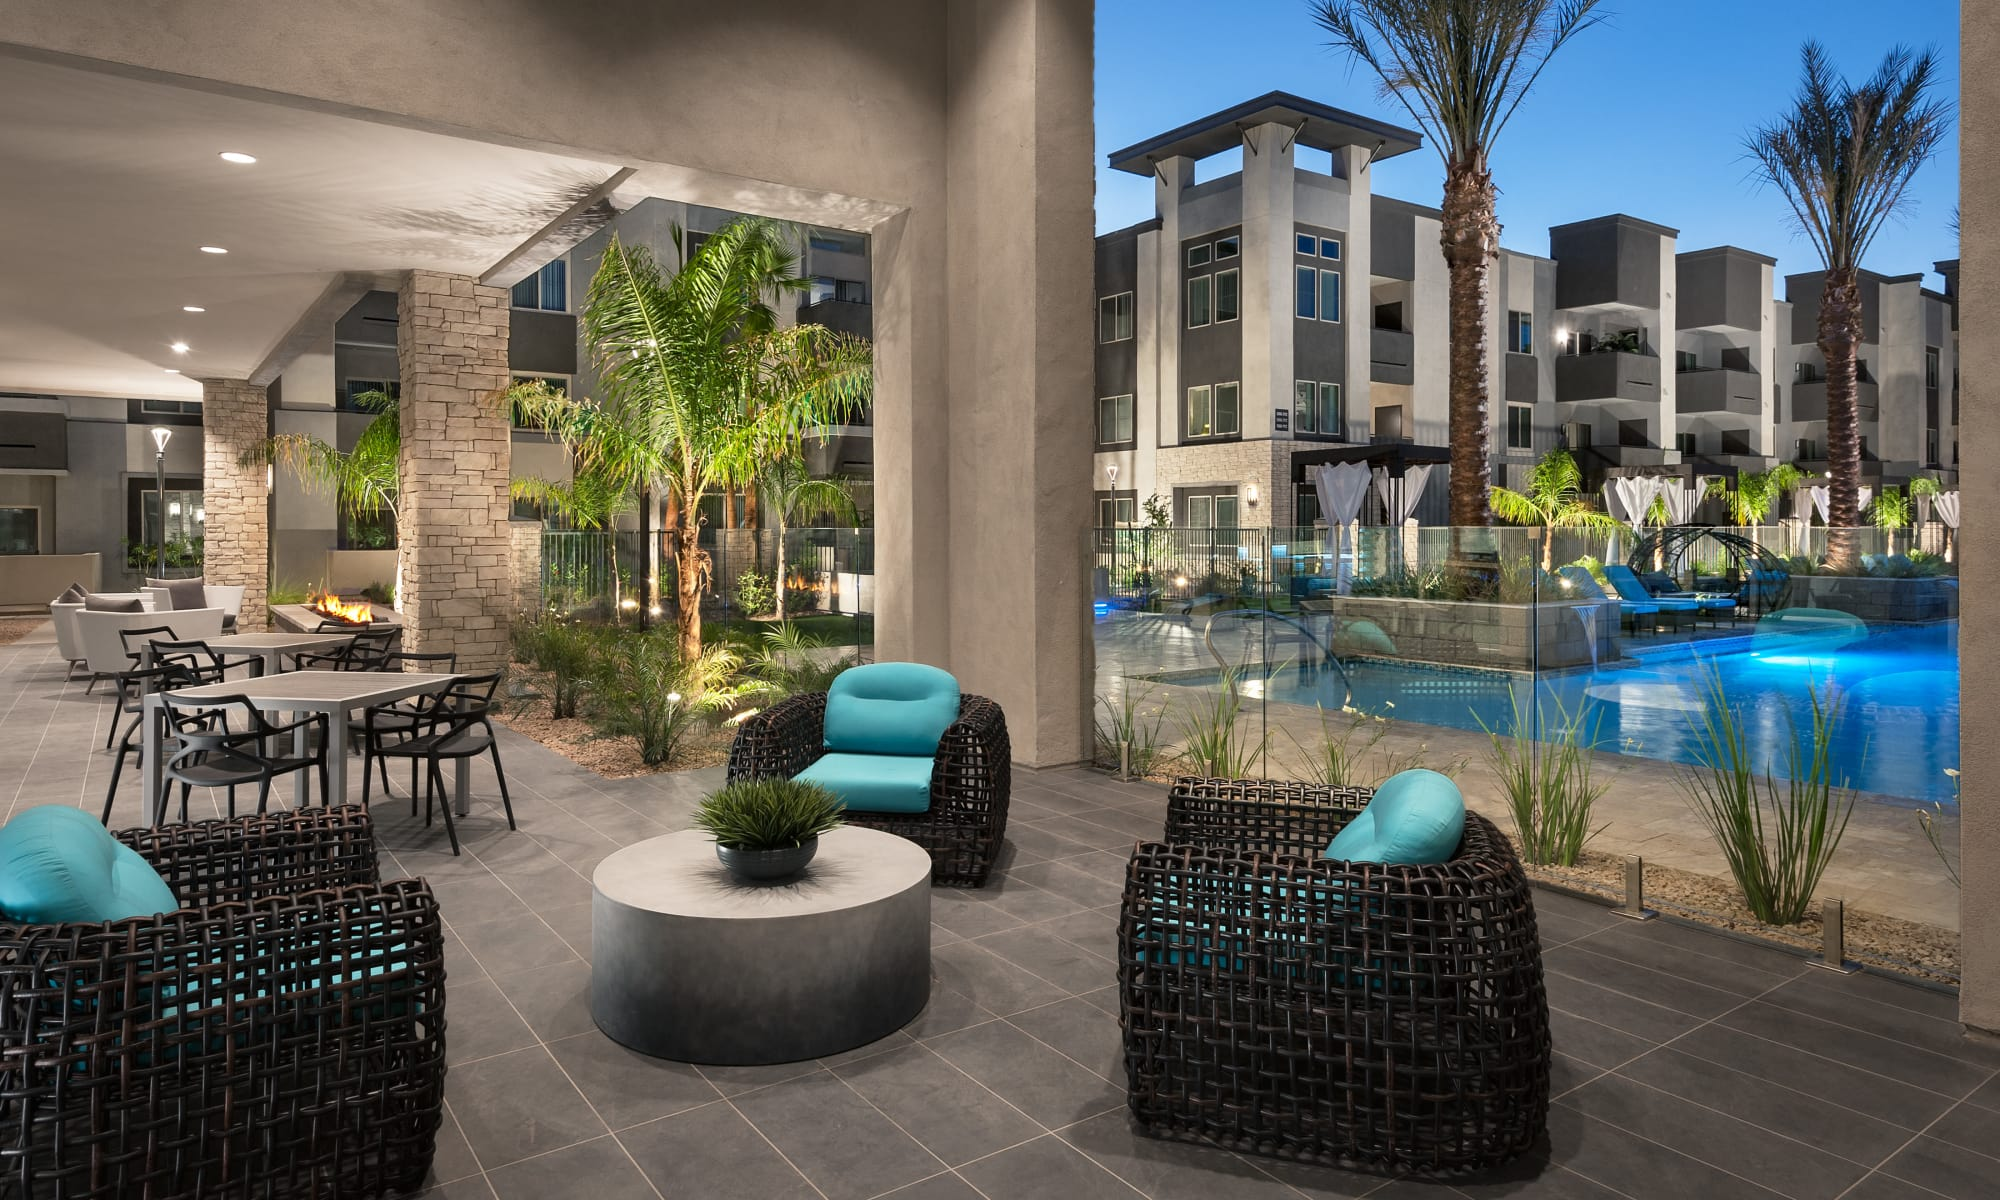 Apartments in Mesa, Arizona at Aviva